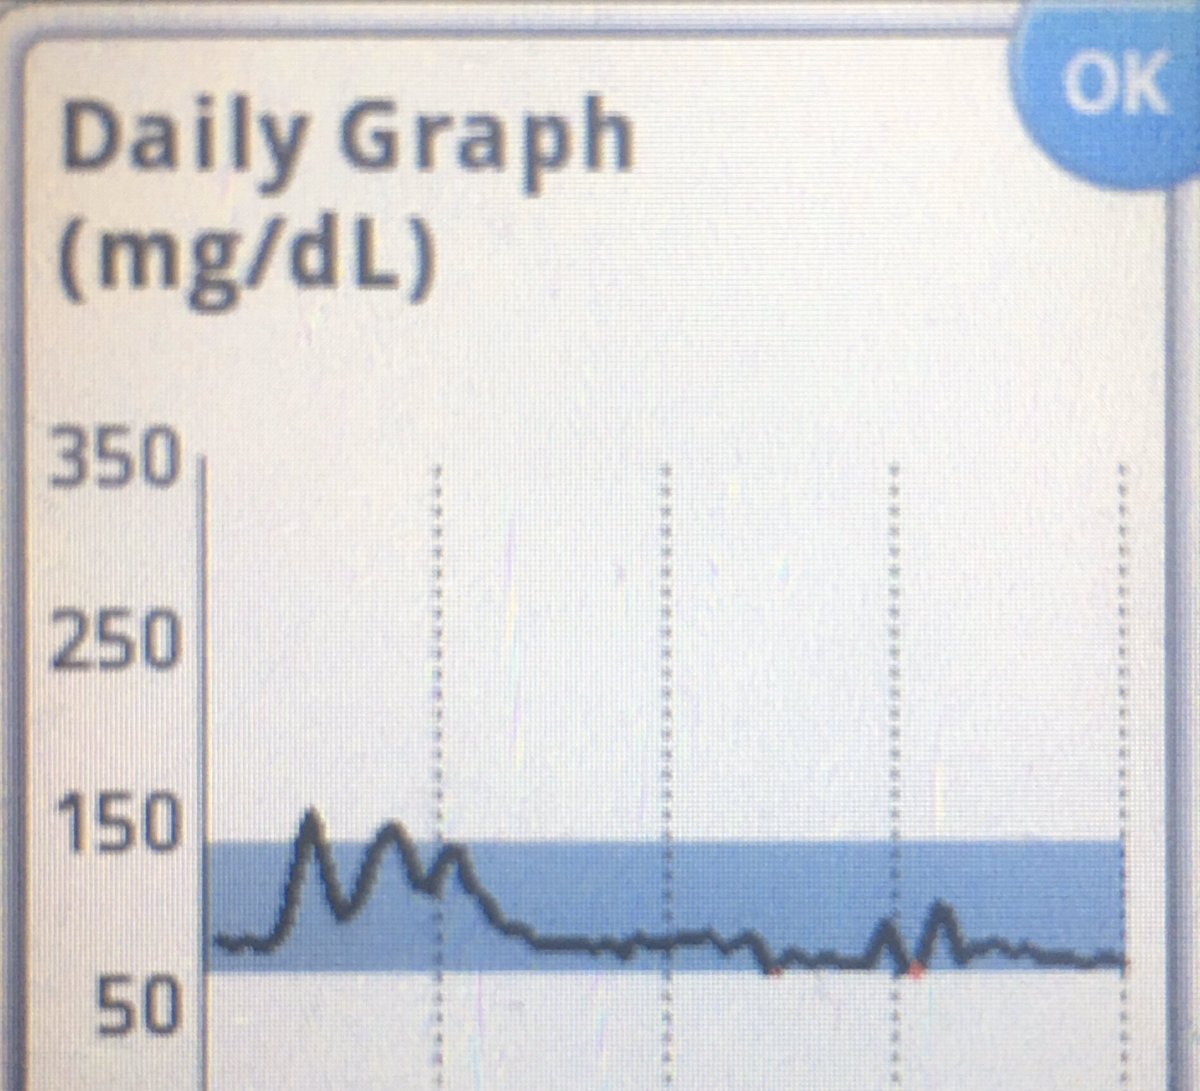 I encourage people to obtain&use a continuous glucose monitor (CGM) a 2 week session you will be able to determine what is spiking your blood sugar. The spike from whole-grain crackers&cheese v smooth graphs are from meals mostly of meat&egg yolks. In US prescription is needed pic.twitter.com/pcTep6F4Qs